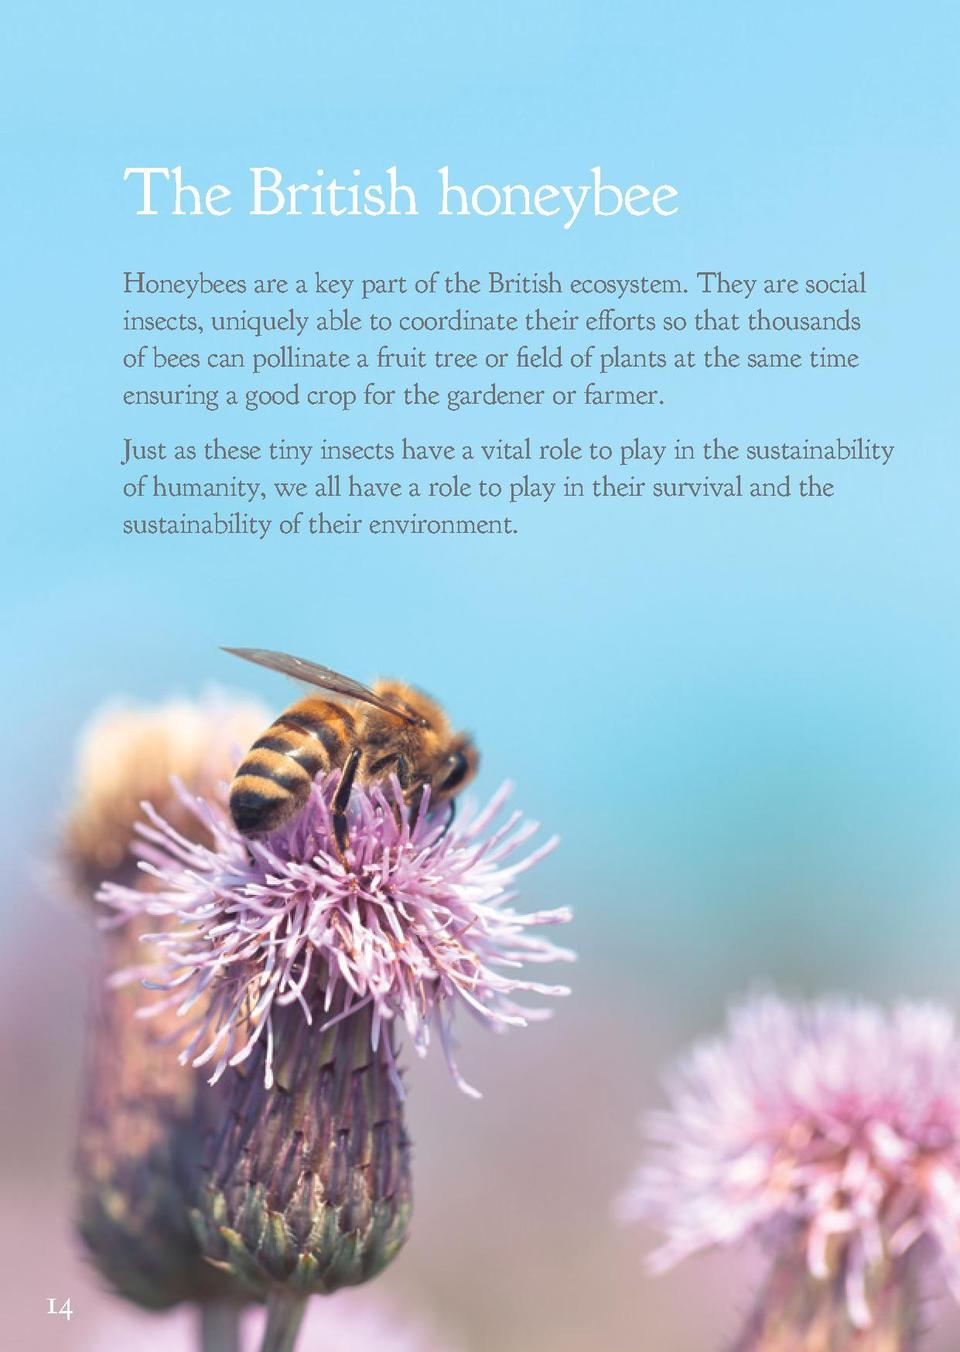 The British honeybee  Save all our bees  Honeybees are a key part of the British ecosystem. They are social insects, uniqu...